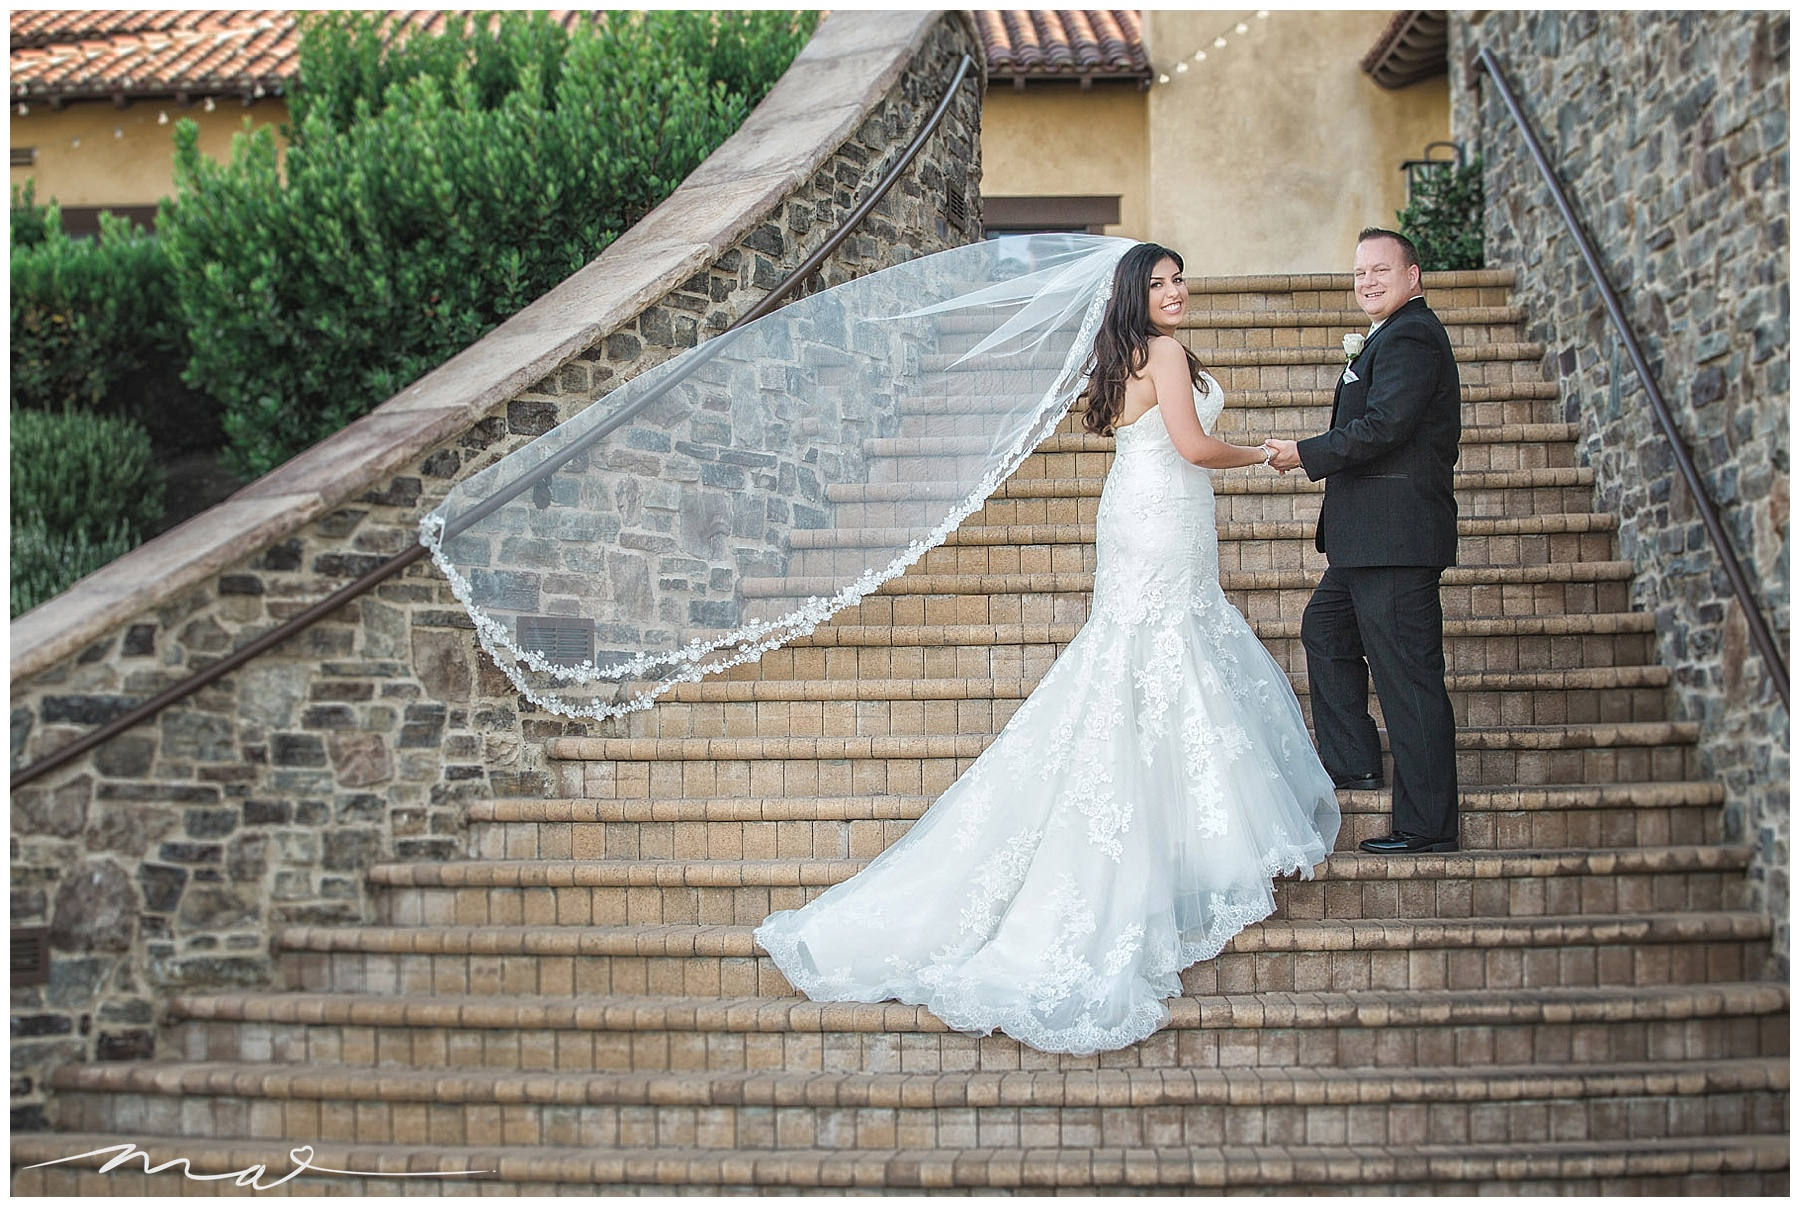 TPC is one of our most favorite wedding venues in Valencia. We love photographing ceremonies on the golf course.